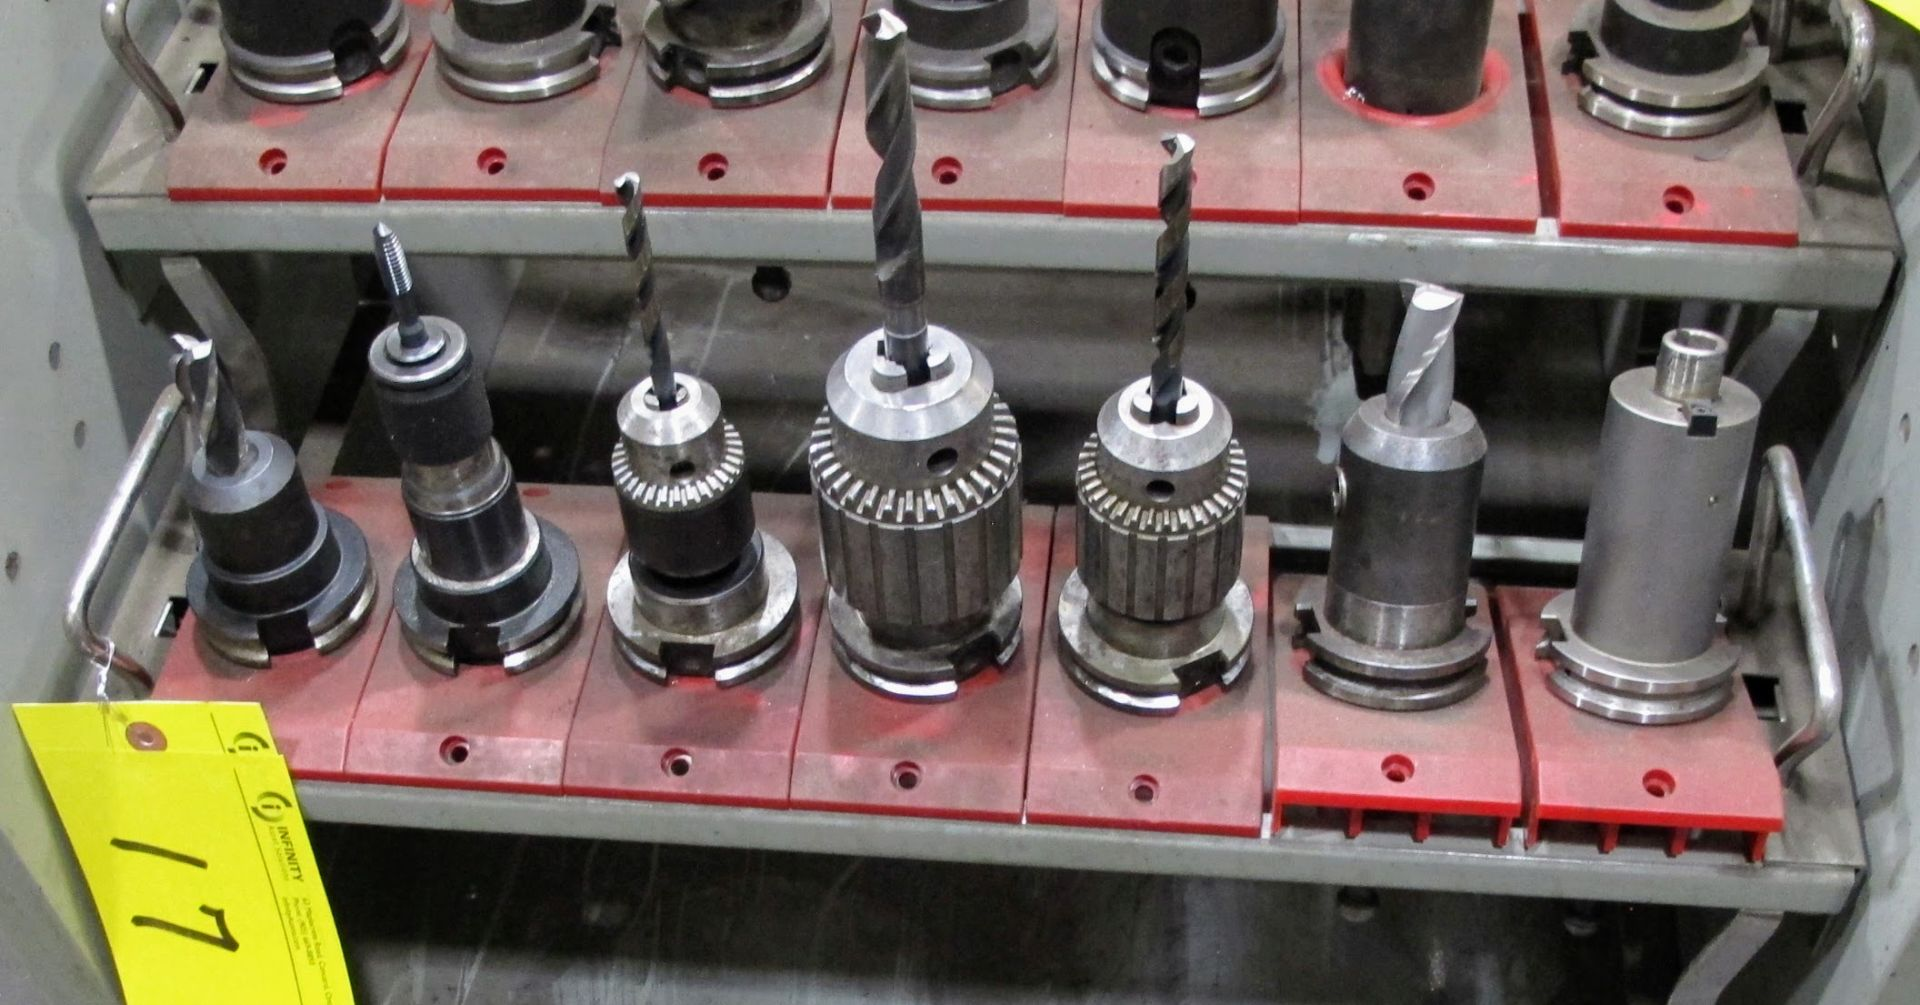 Lot 17 - LOT OF 7 CAT 40 TOOL HOLDERS W/ATTACHMENTS